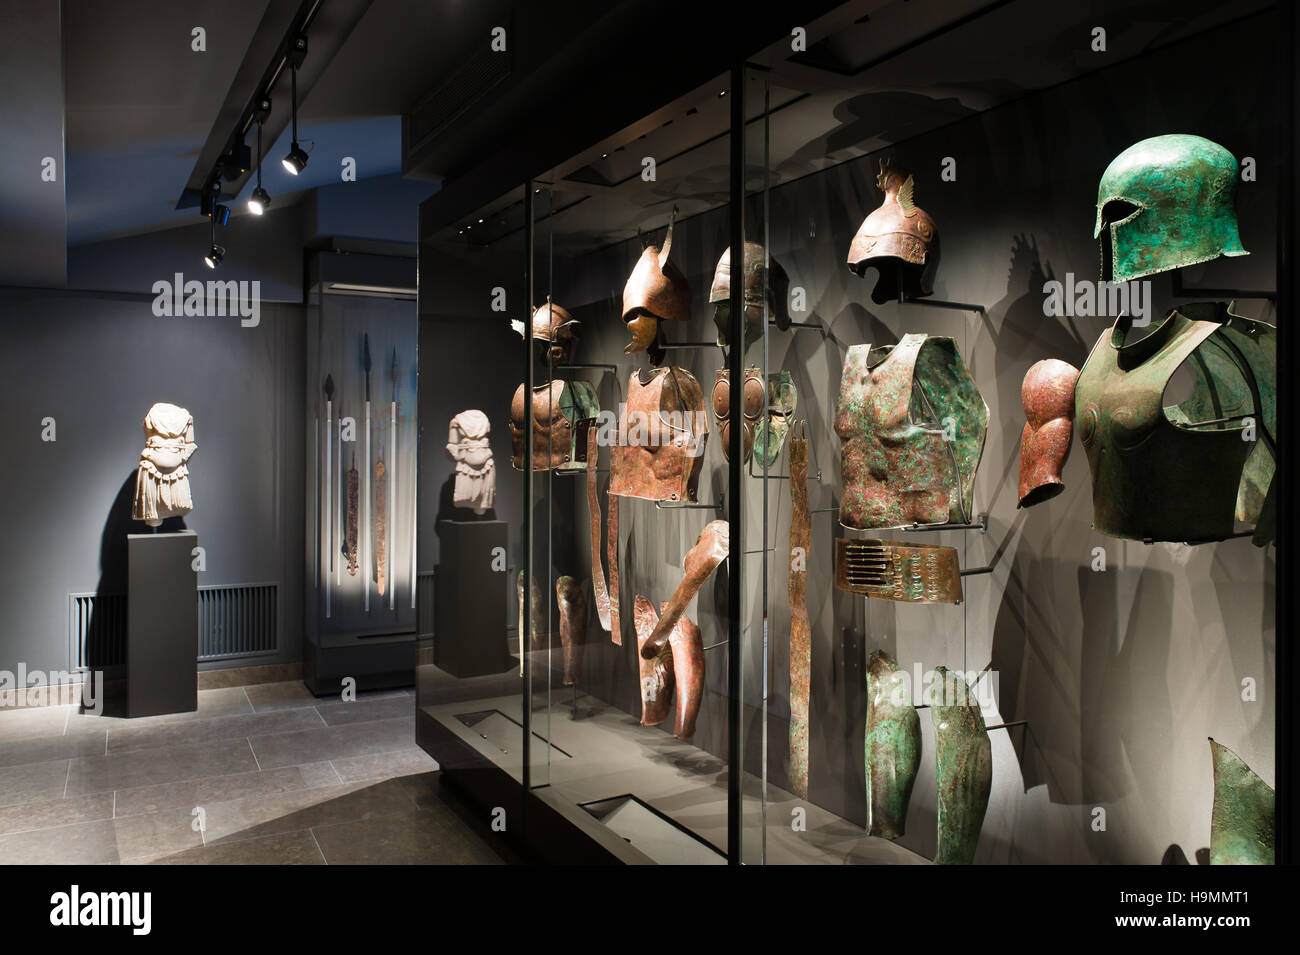 Chestplates and helmets in a lit display case,  Museum of Antiquities, Mougins, France - Stock Image